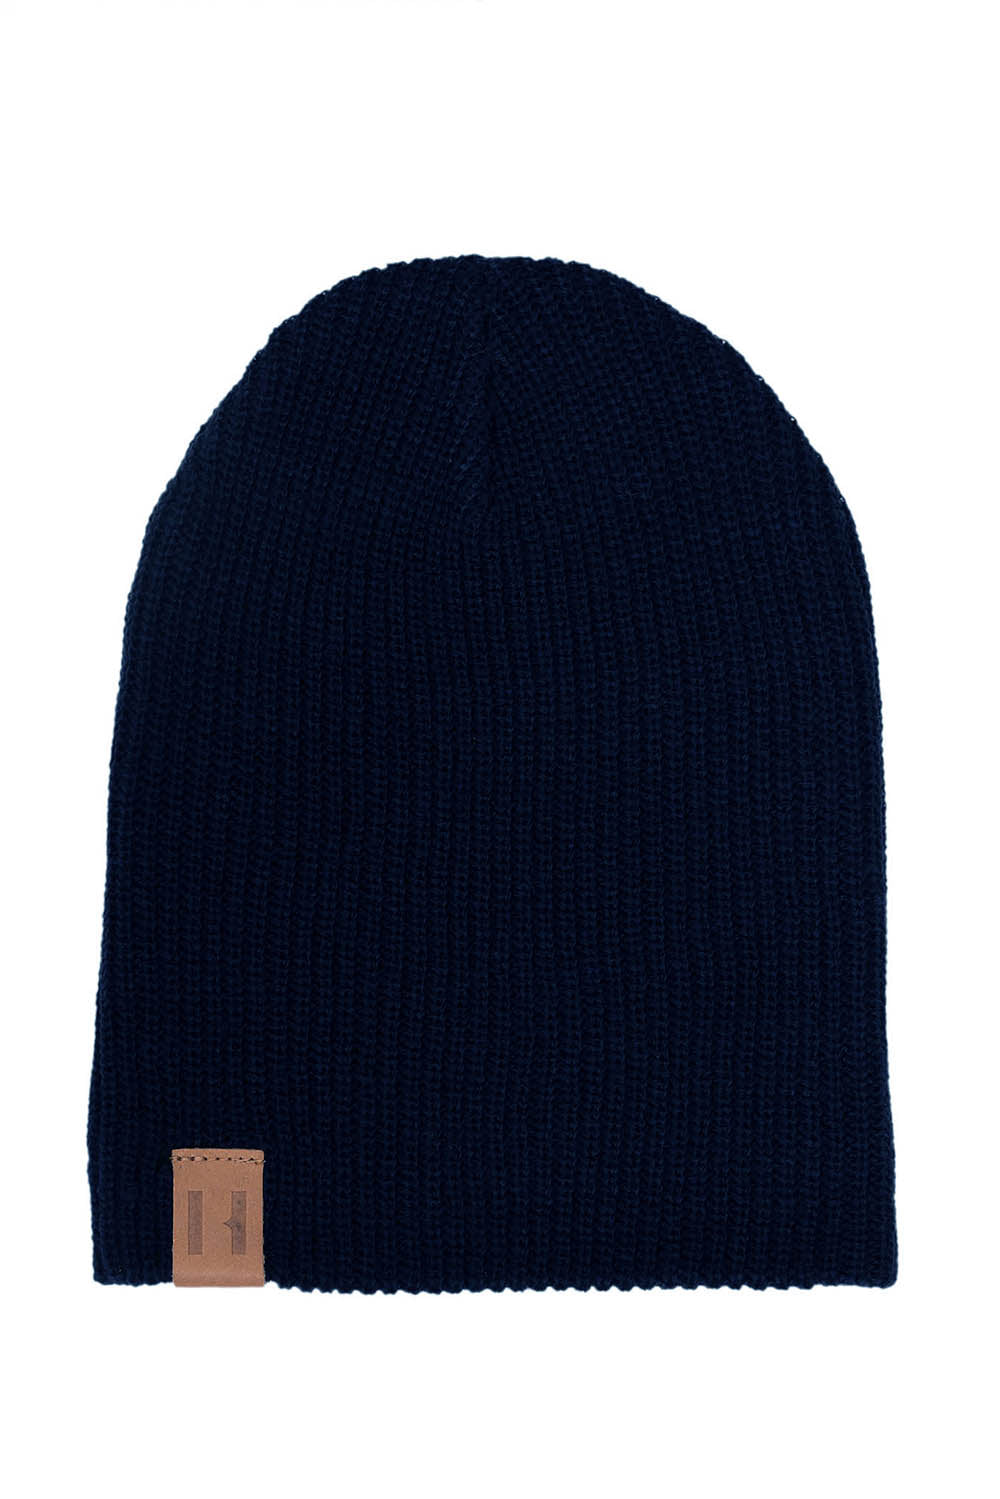 Navy Knit Beanie by BEAU HUDSON